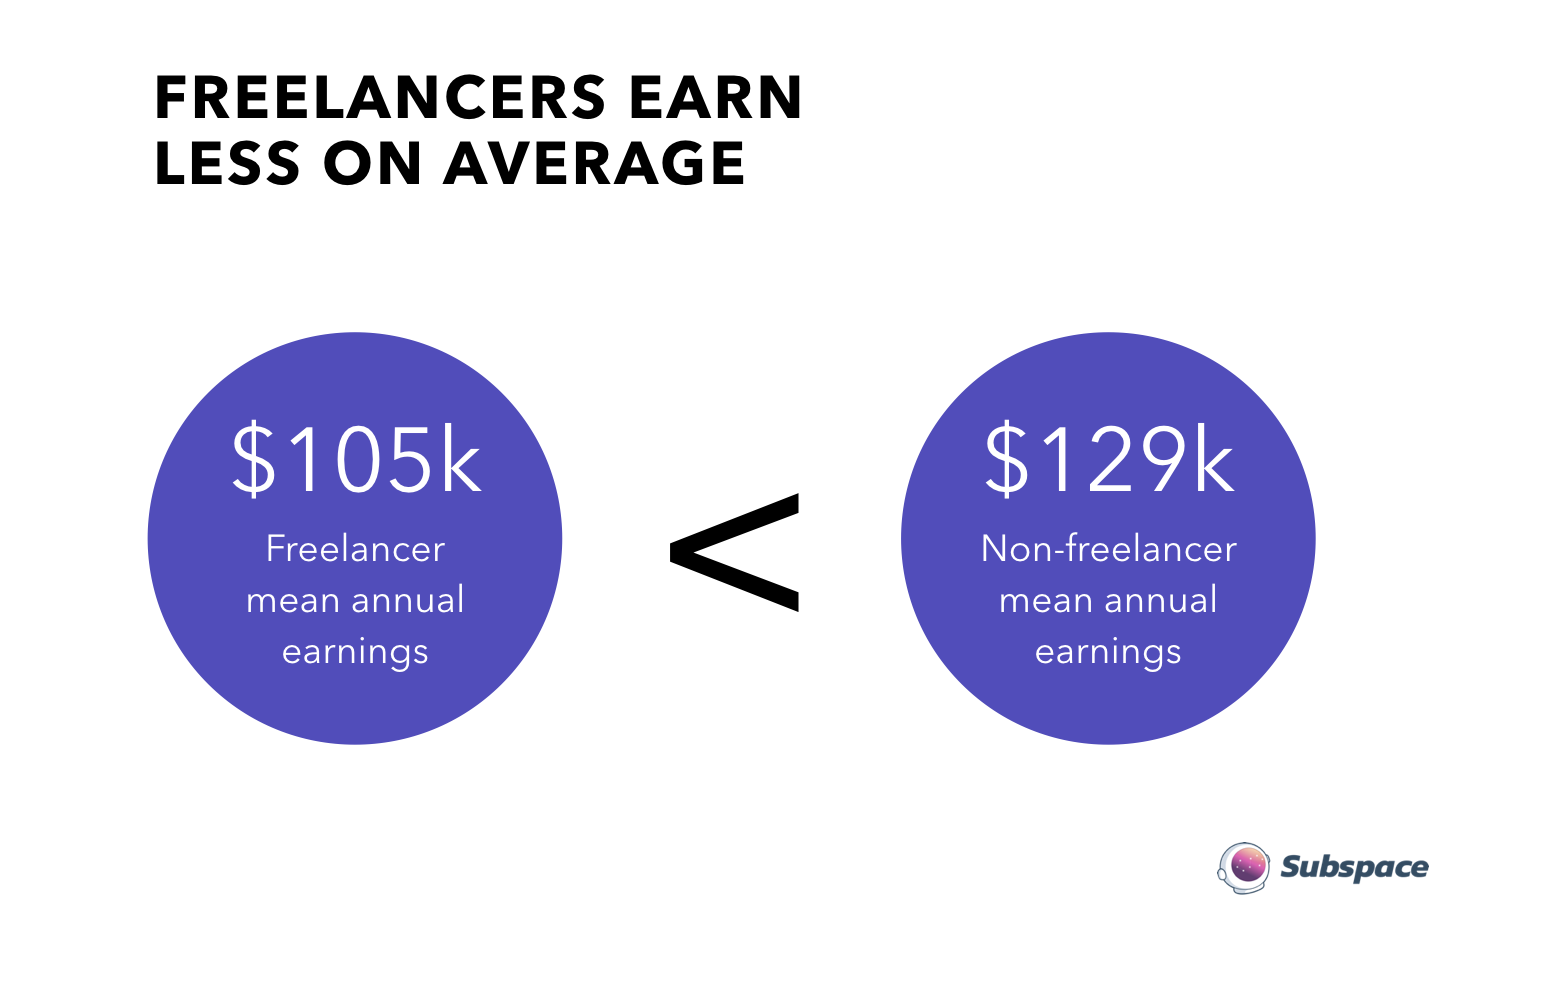 Their #1 challenge is finding well-paid work - Freelancers say the number one way they find work is through dev shops. The second is freelancing sites. Overwhelmingly, they say that finding good, paid work that fits their niche skills is a top challenge to freelancing.